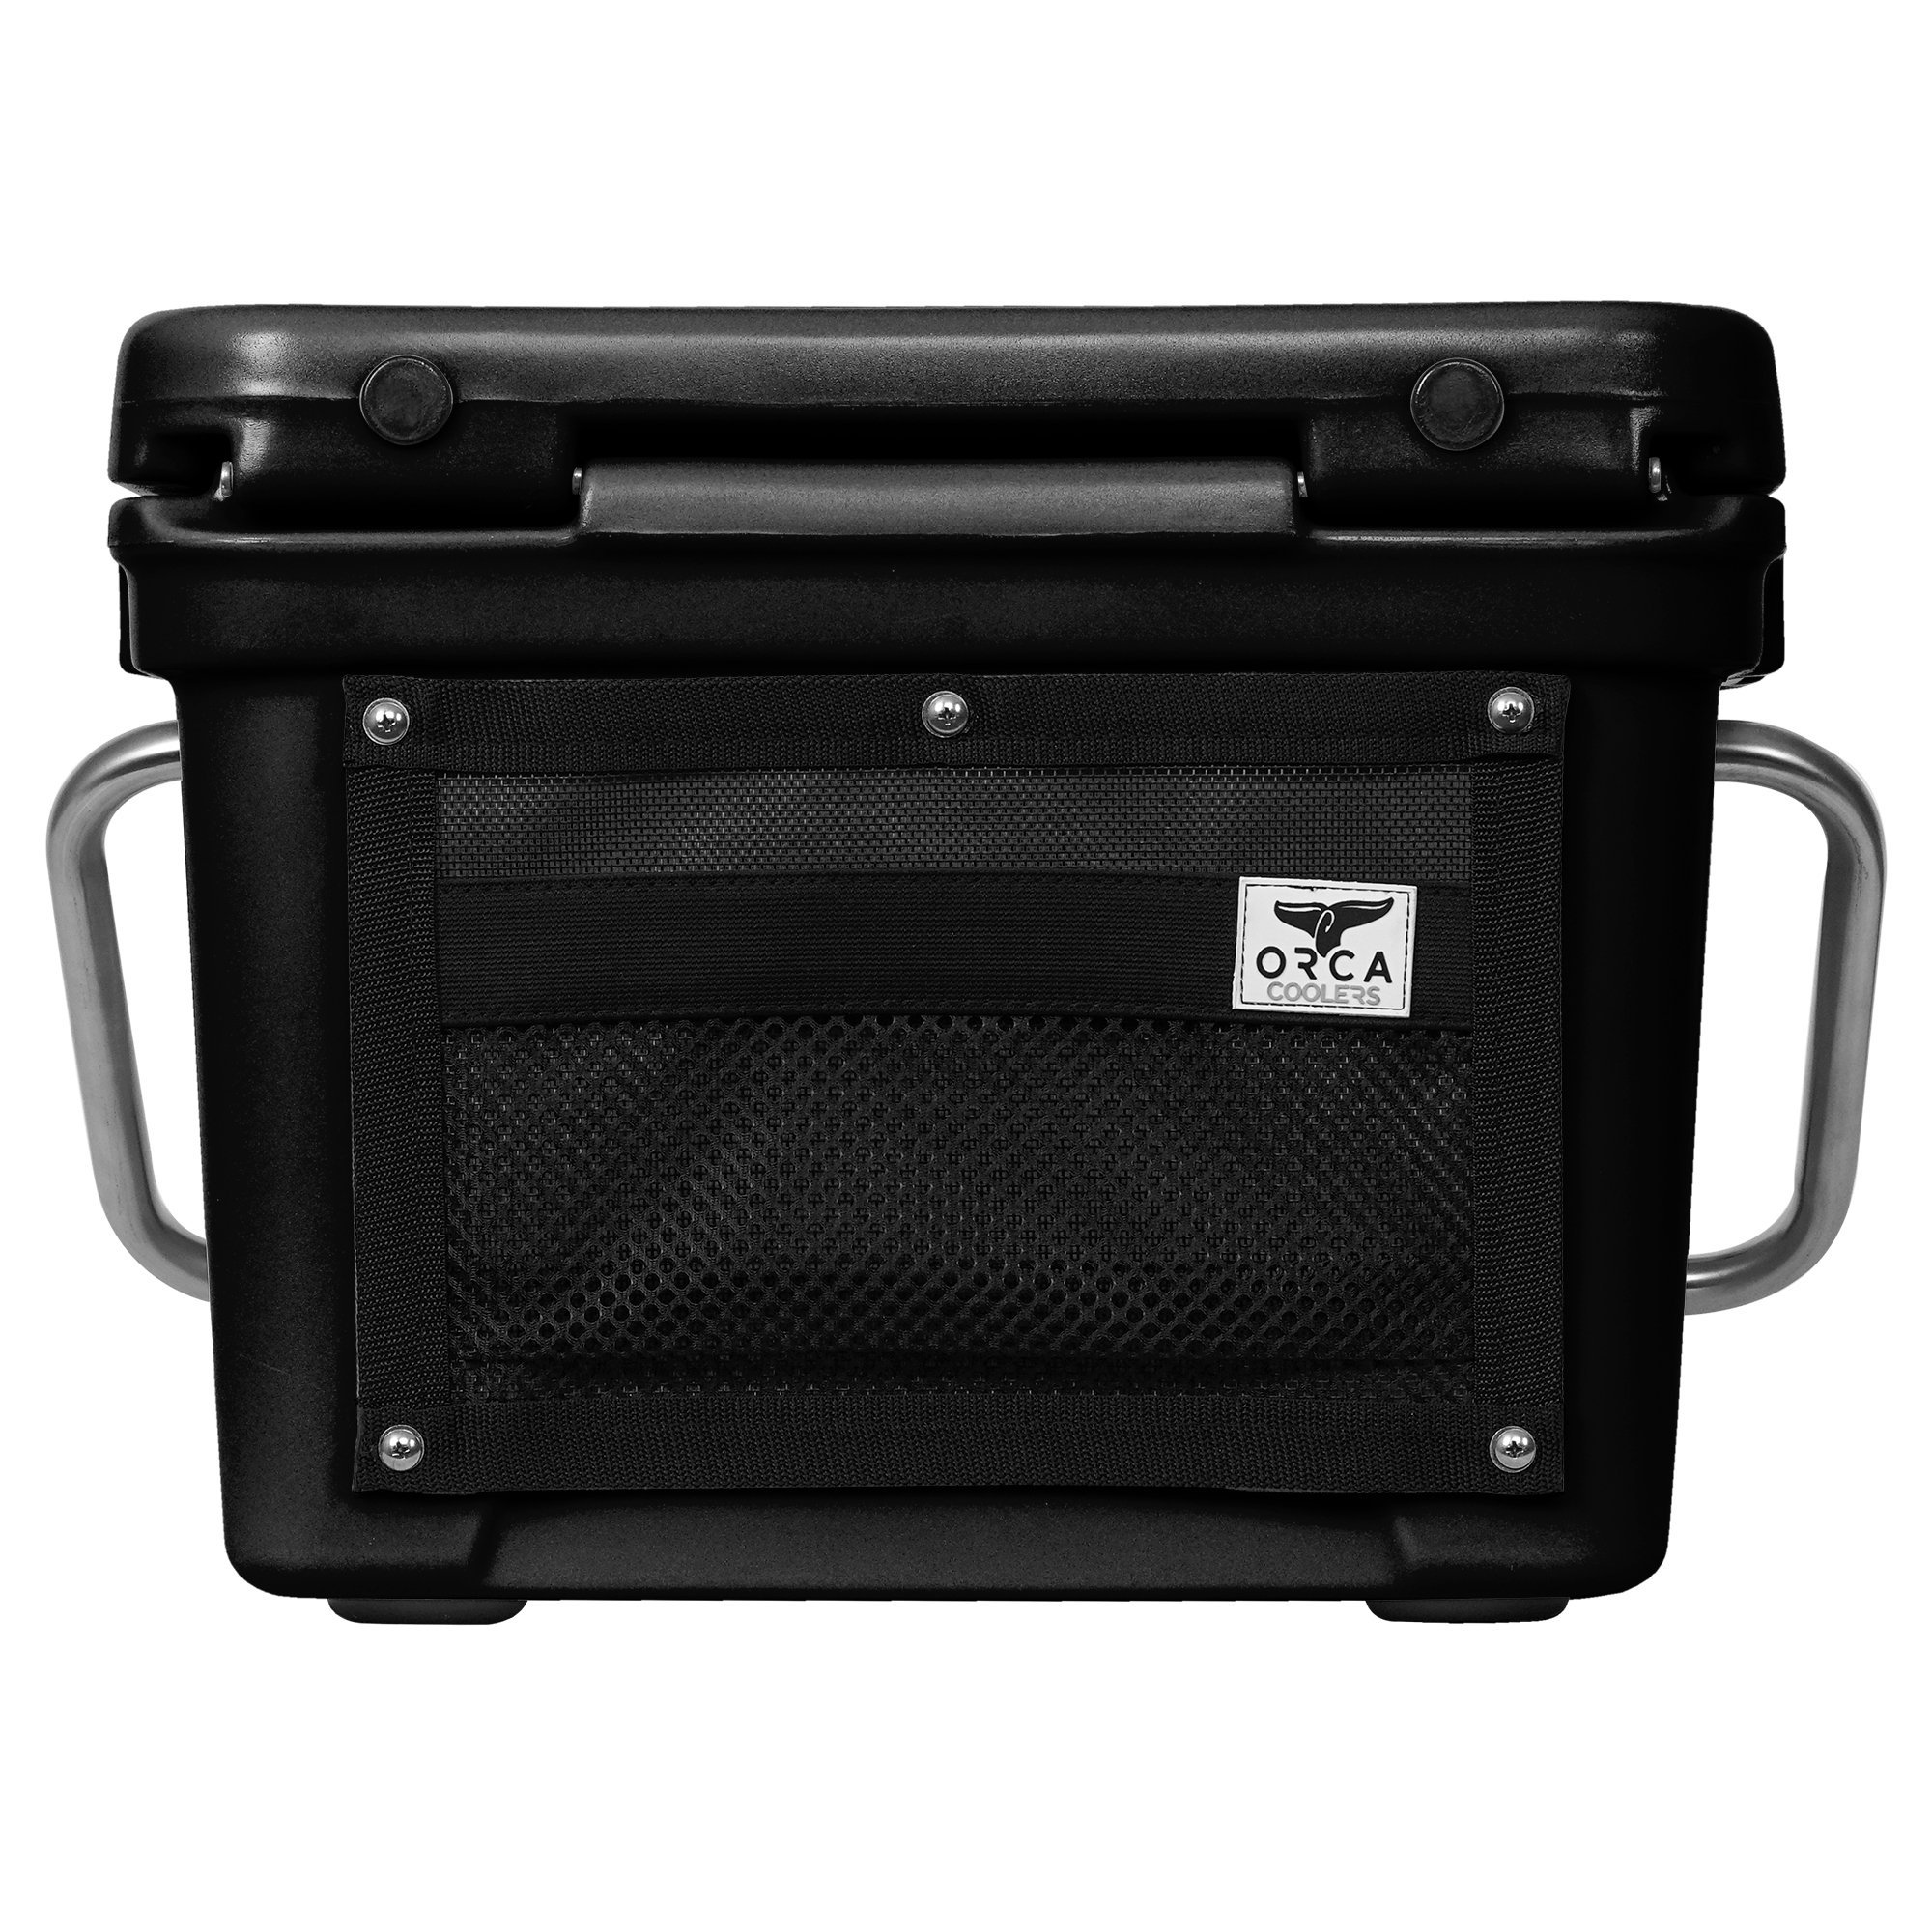 Orca 20 Quart 18 Can High Performance Roto Molded Insulated Ice Cooler, Black